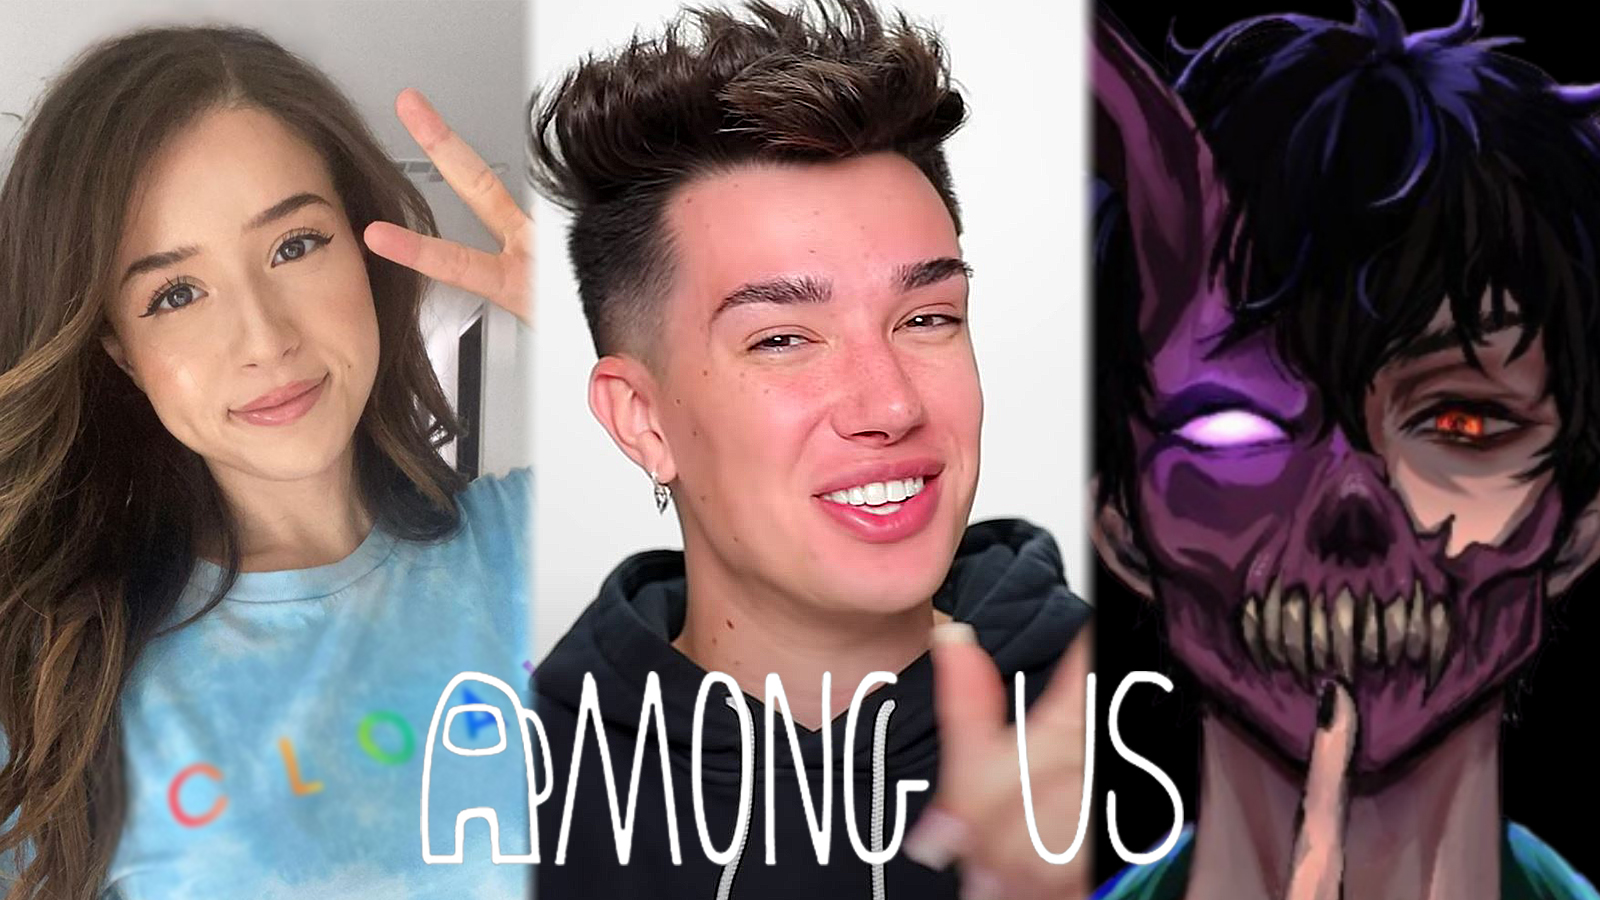 James Charles teases among us Poki Corpse more